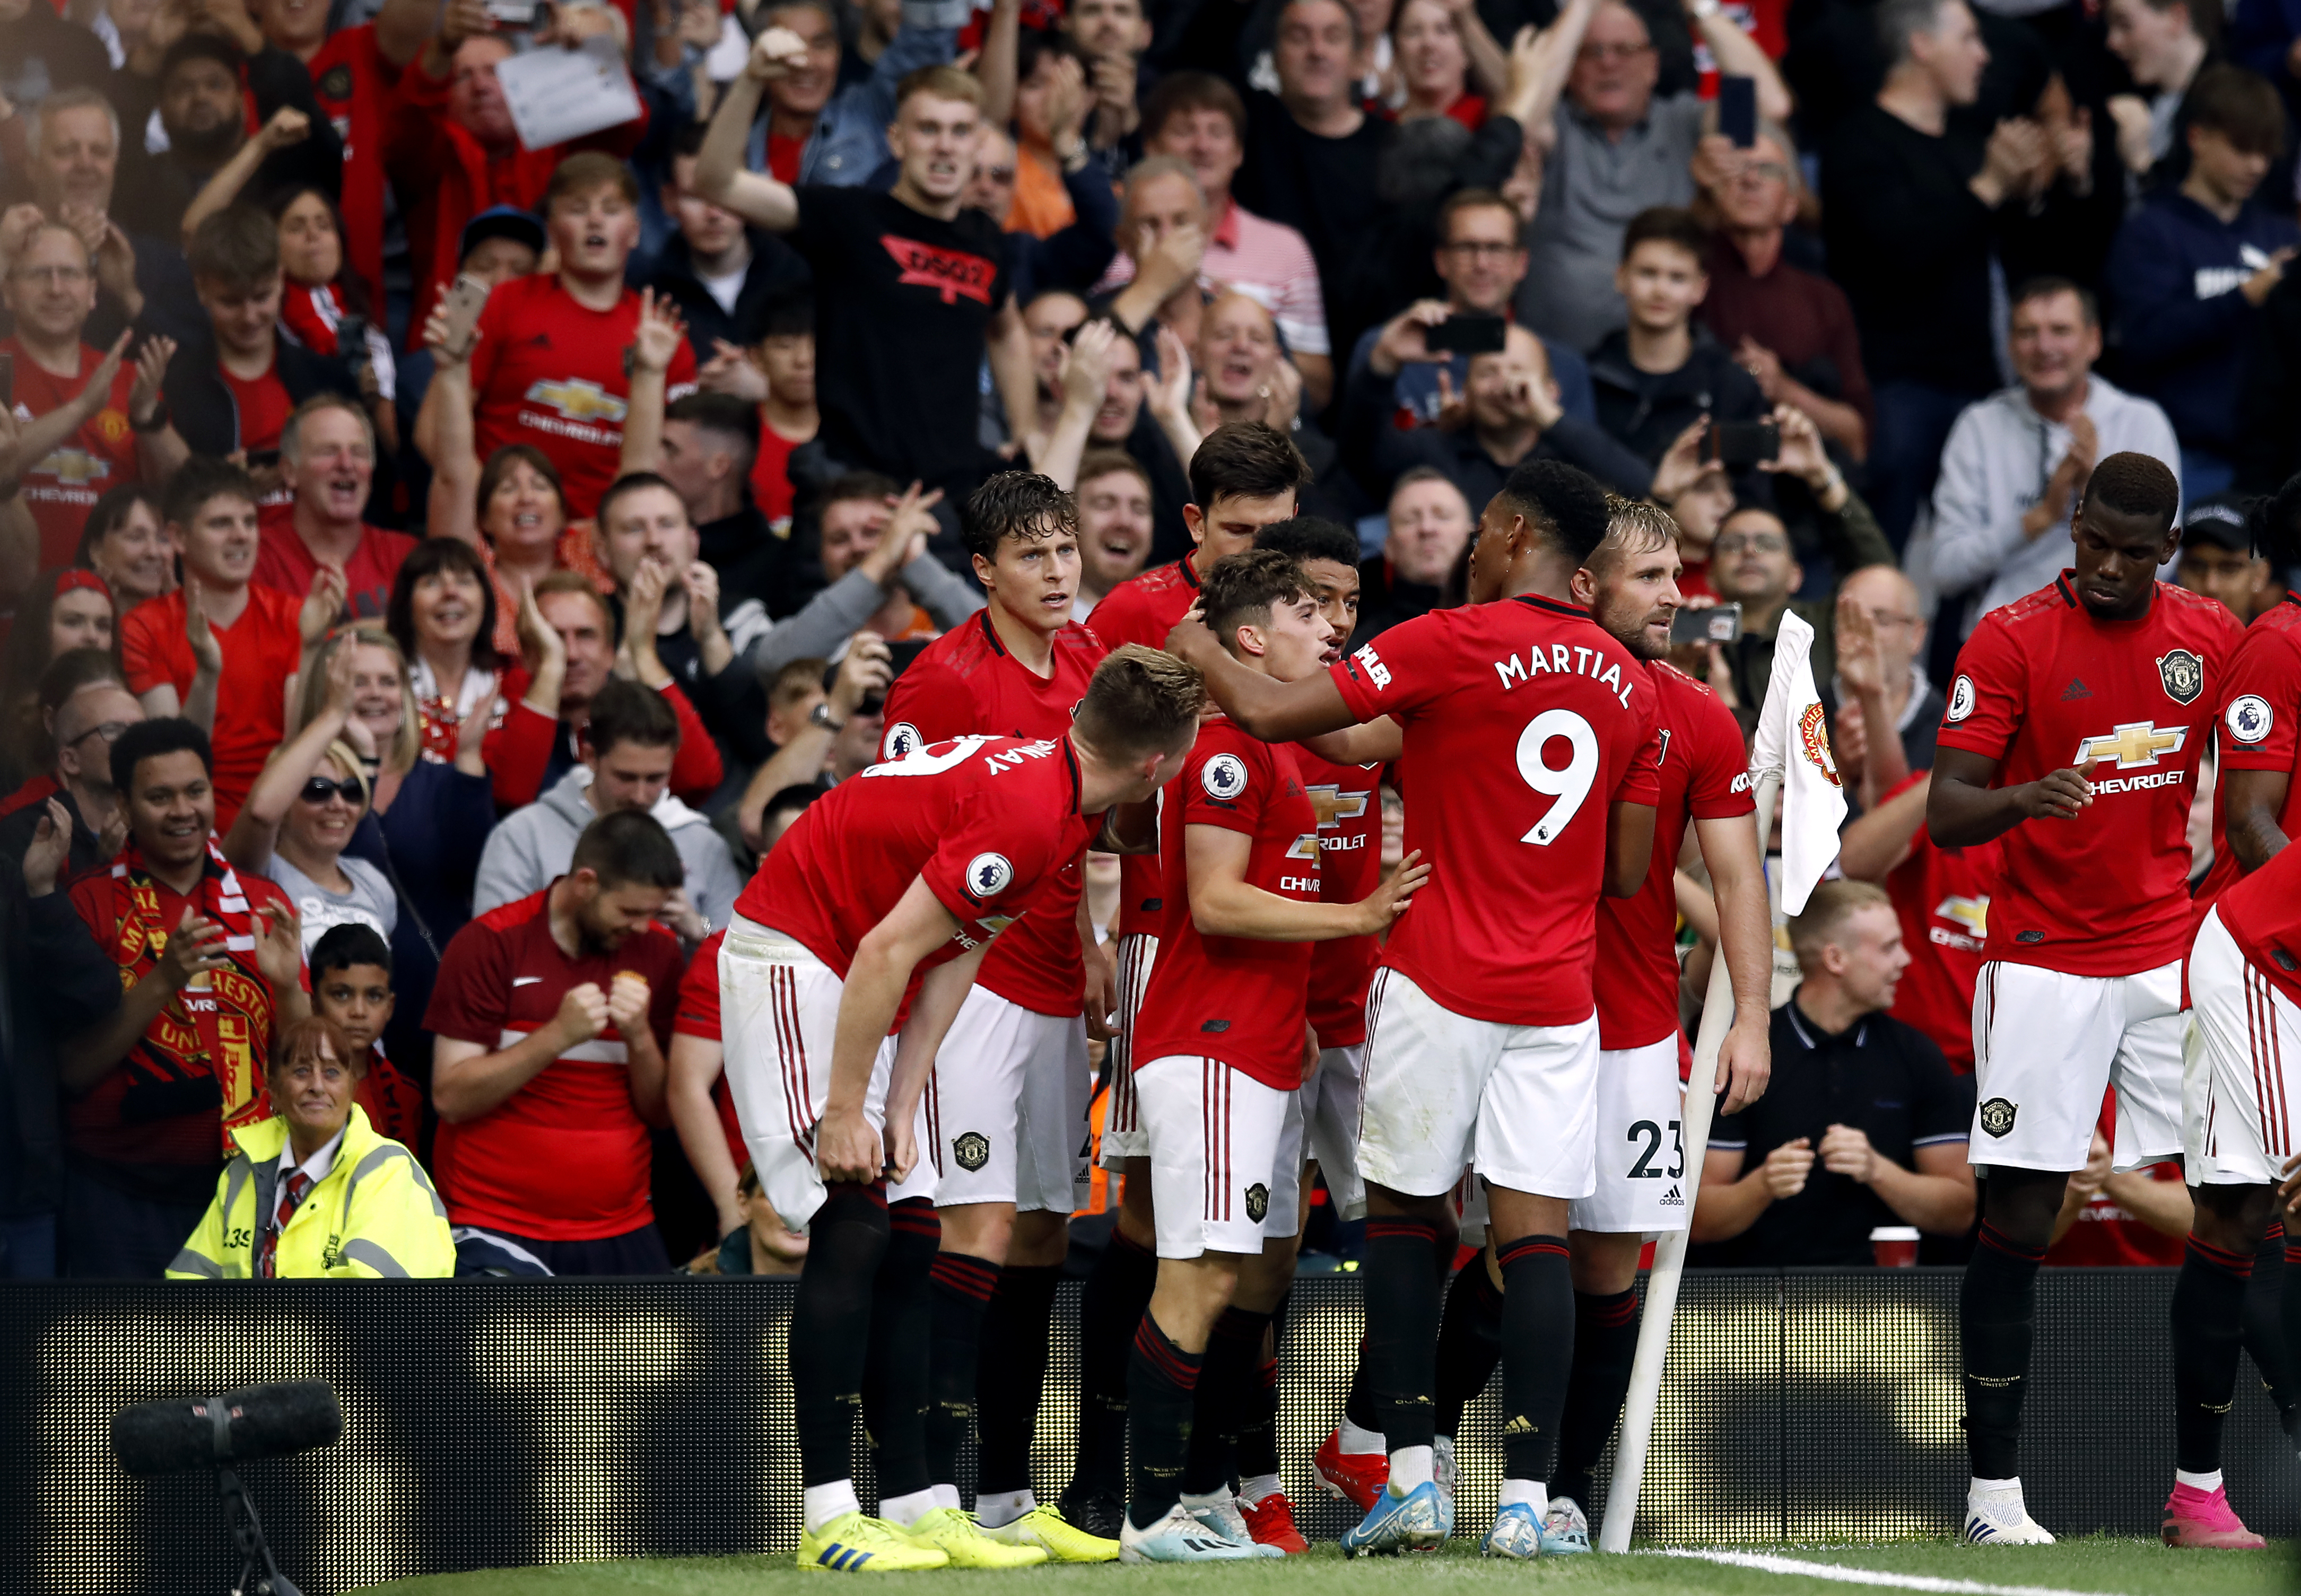 Manchester United celebrate Daniel James' strike which put them 4-0 up against Chelsea